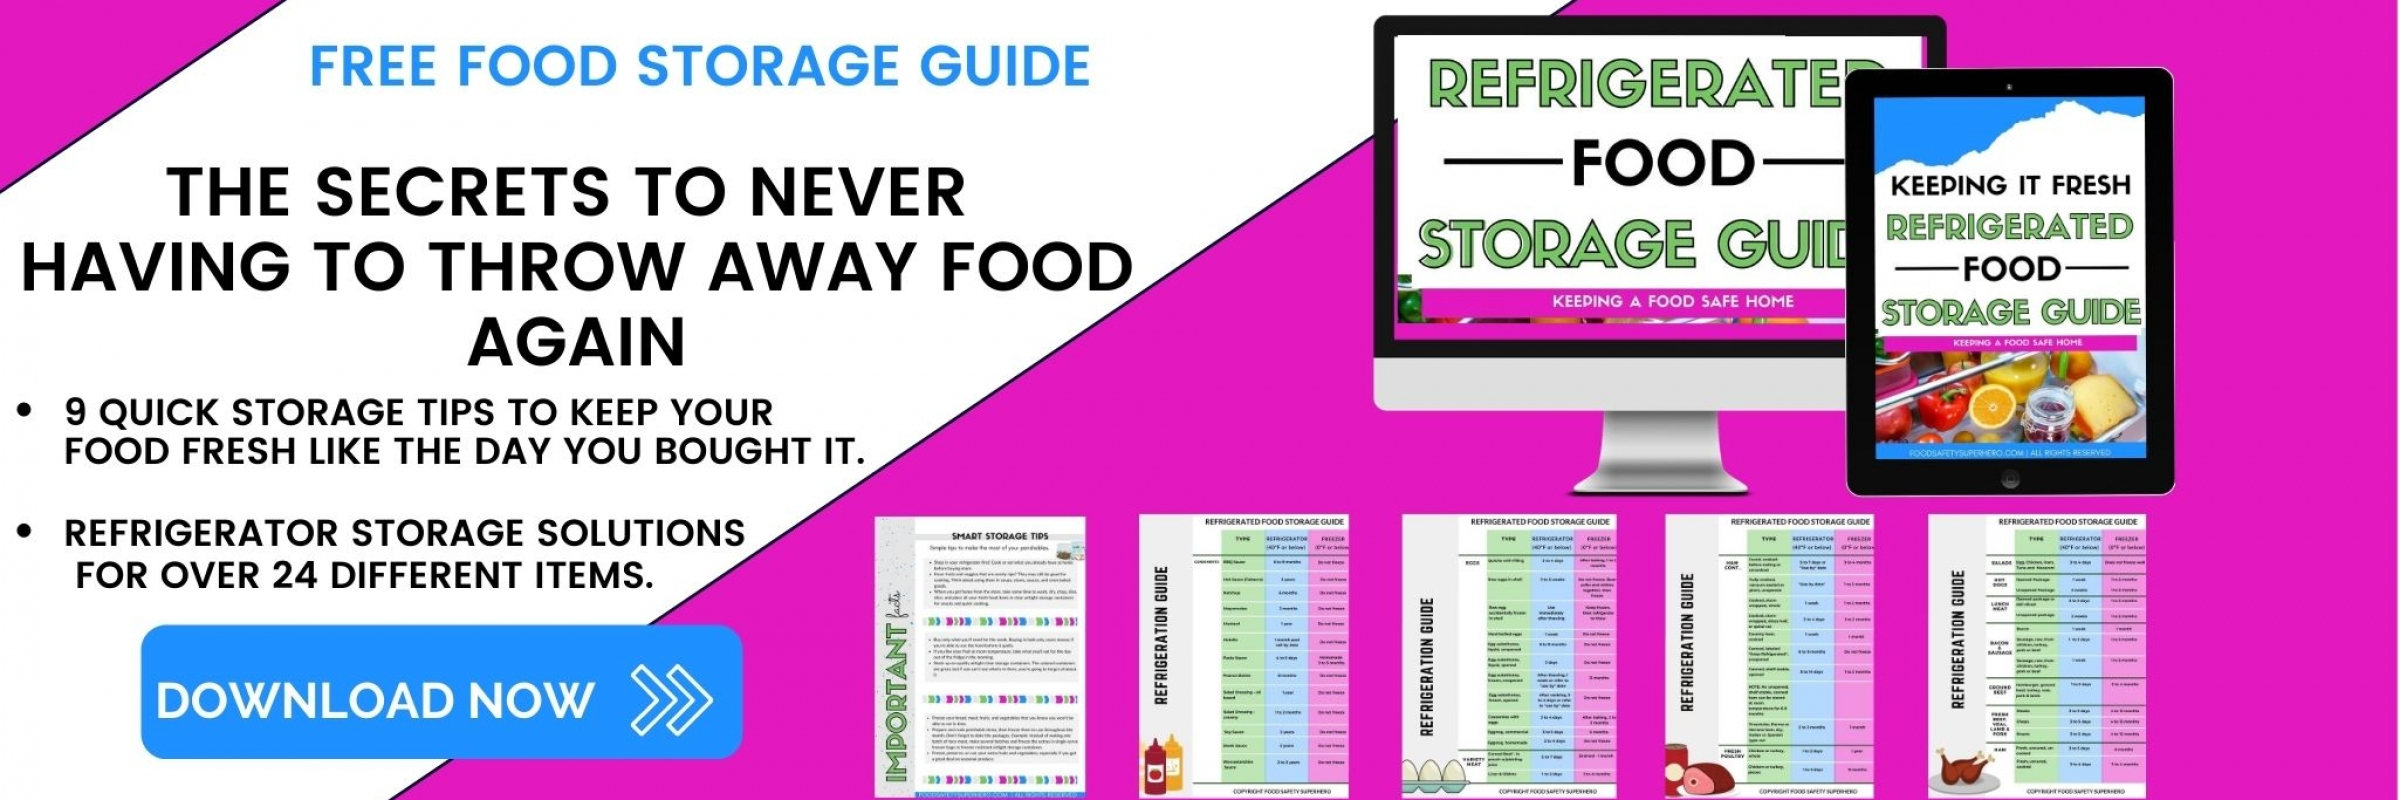 FREE GUIDE ULTIMATE FOOD STORAGE AND COOKING TEMPERATURE SLIDER